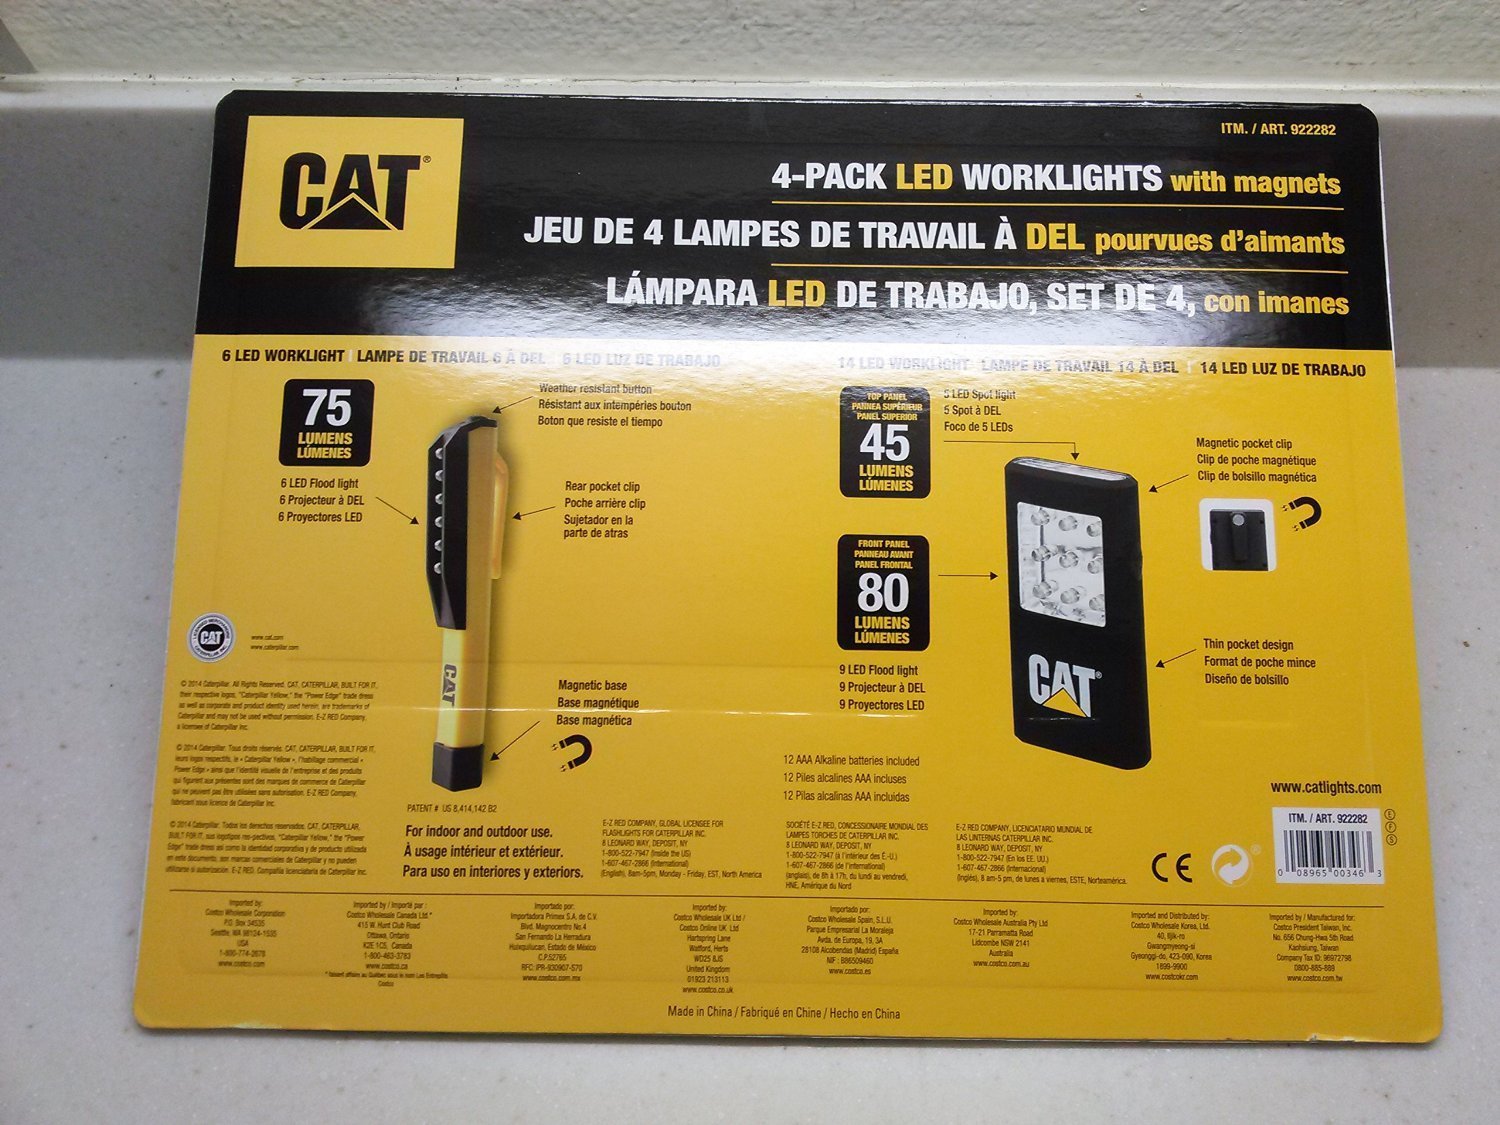 Cat 4 pack led worklights with magnets and includes 12 duracell cat 4 pack led worklights with magnets and includes 12 duracell aaa alkaline batteries by caterpillar amazon parisarafo Gallery